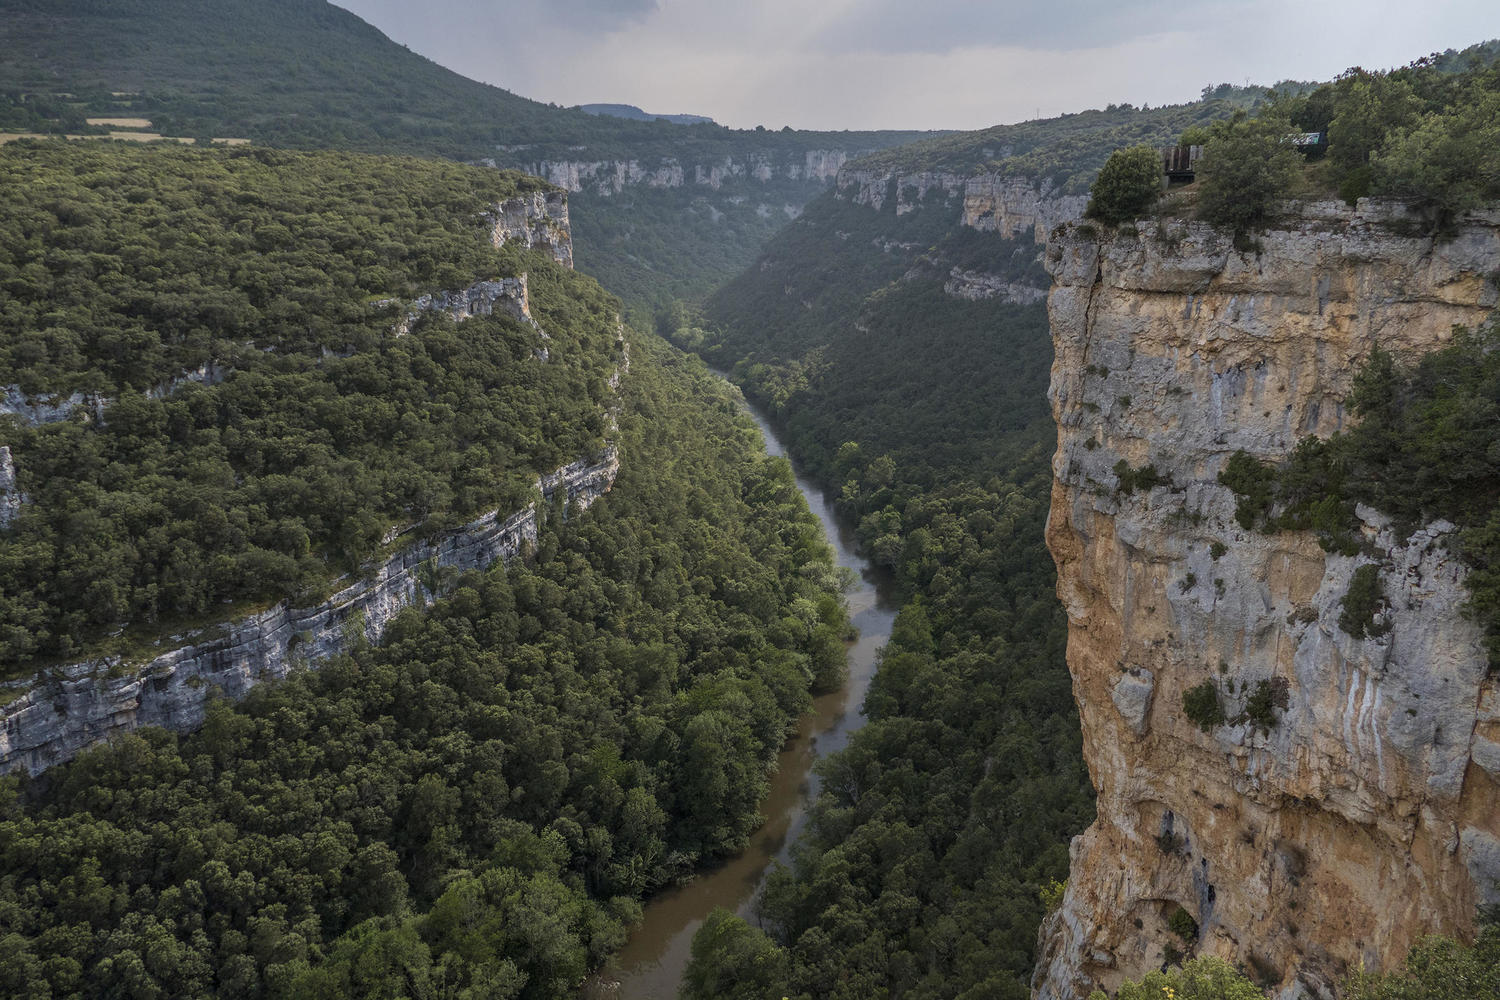 Beautiful canyon view on the walk to Valdelateja